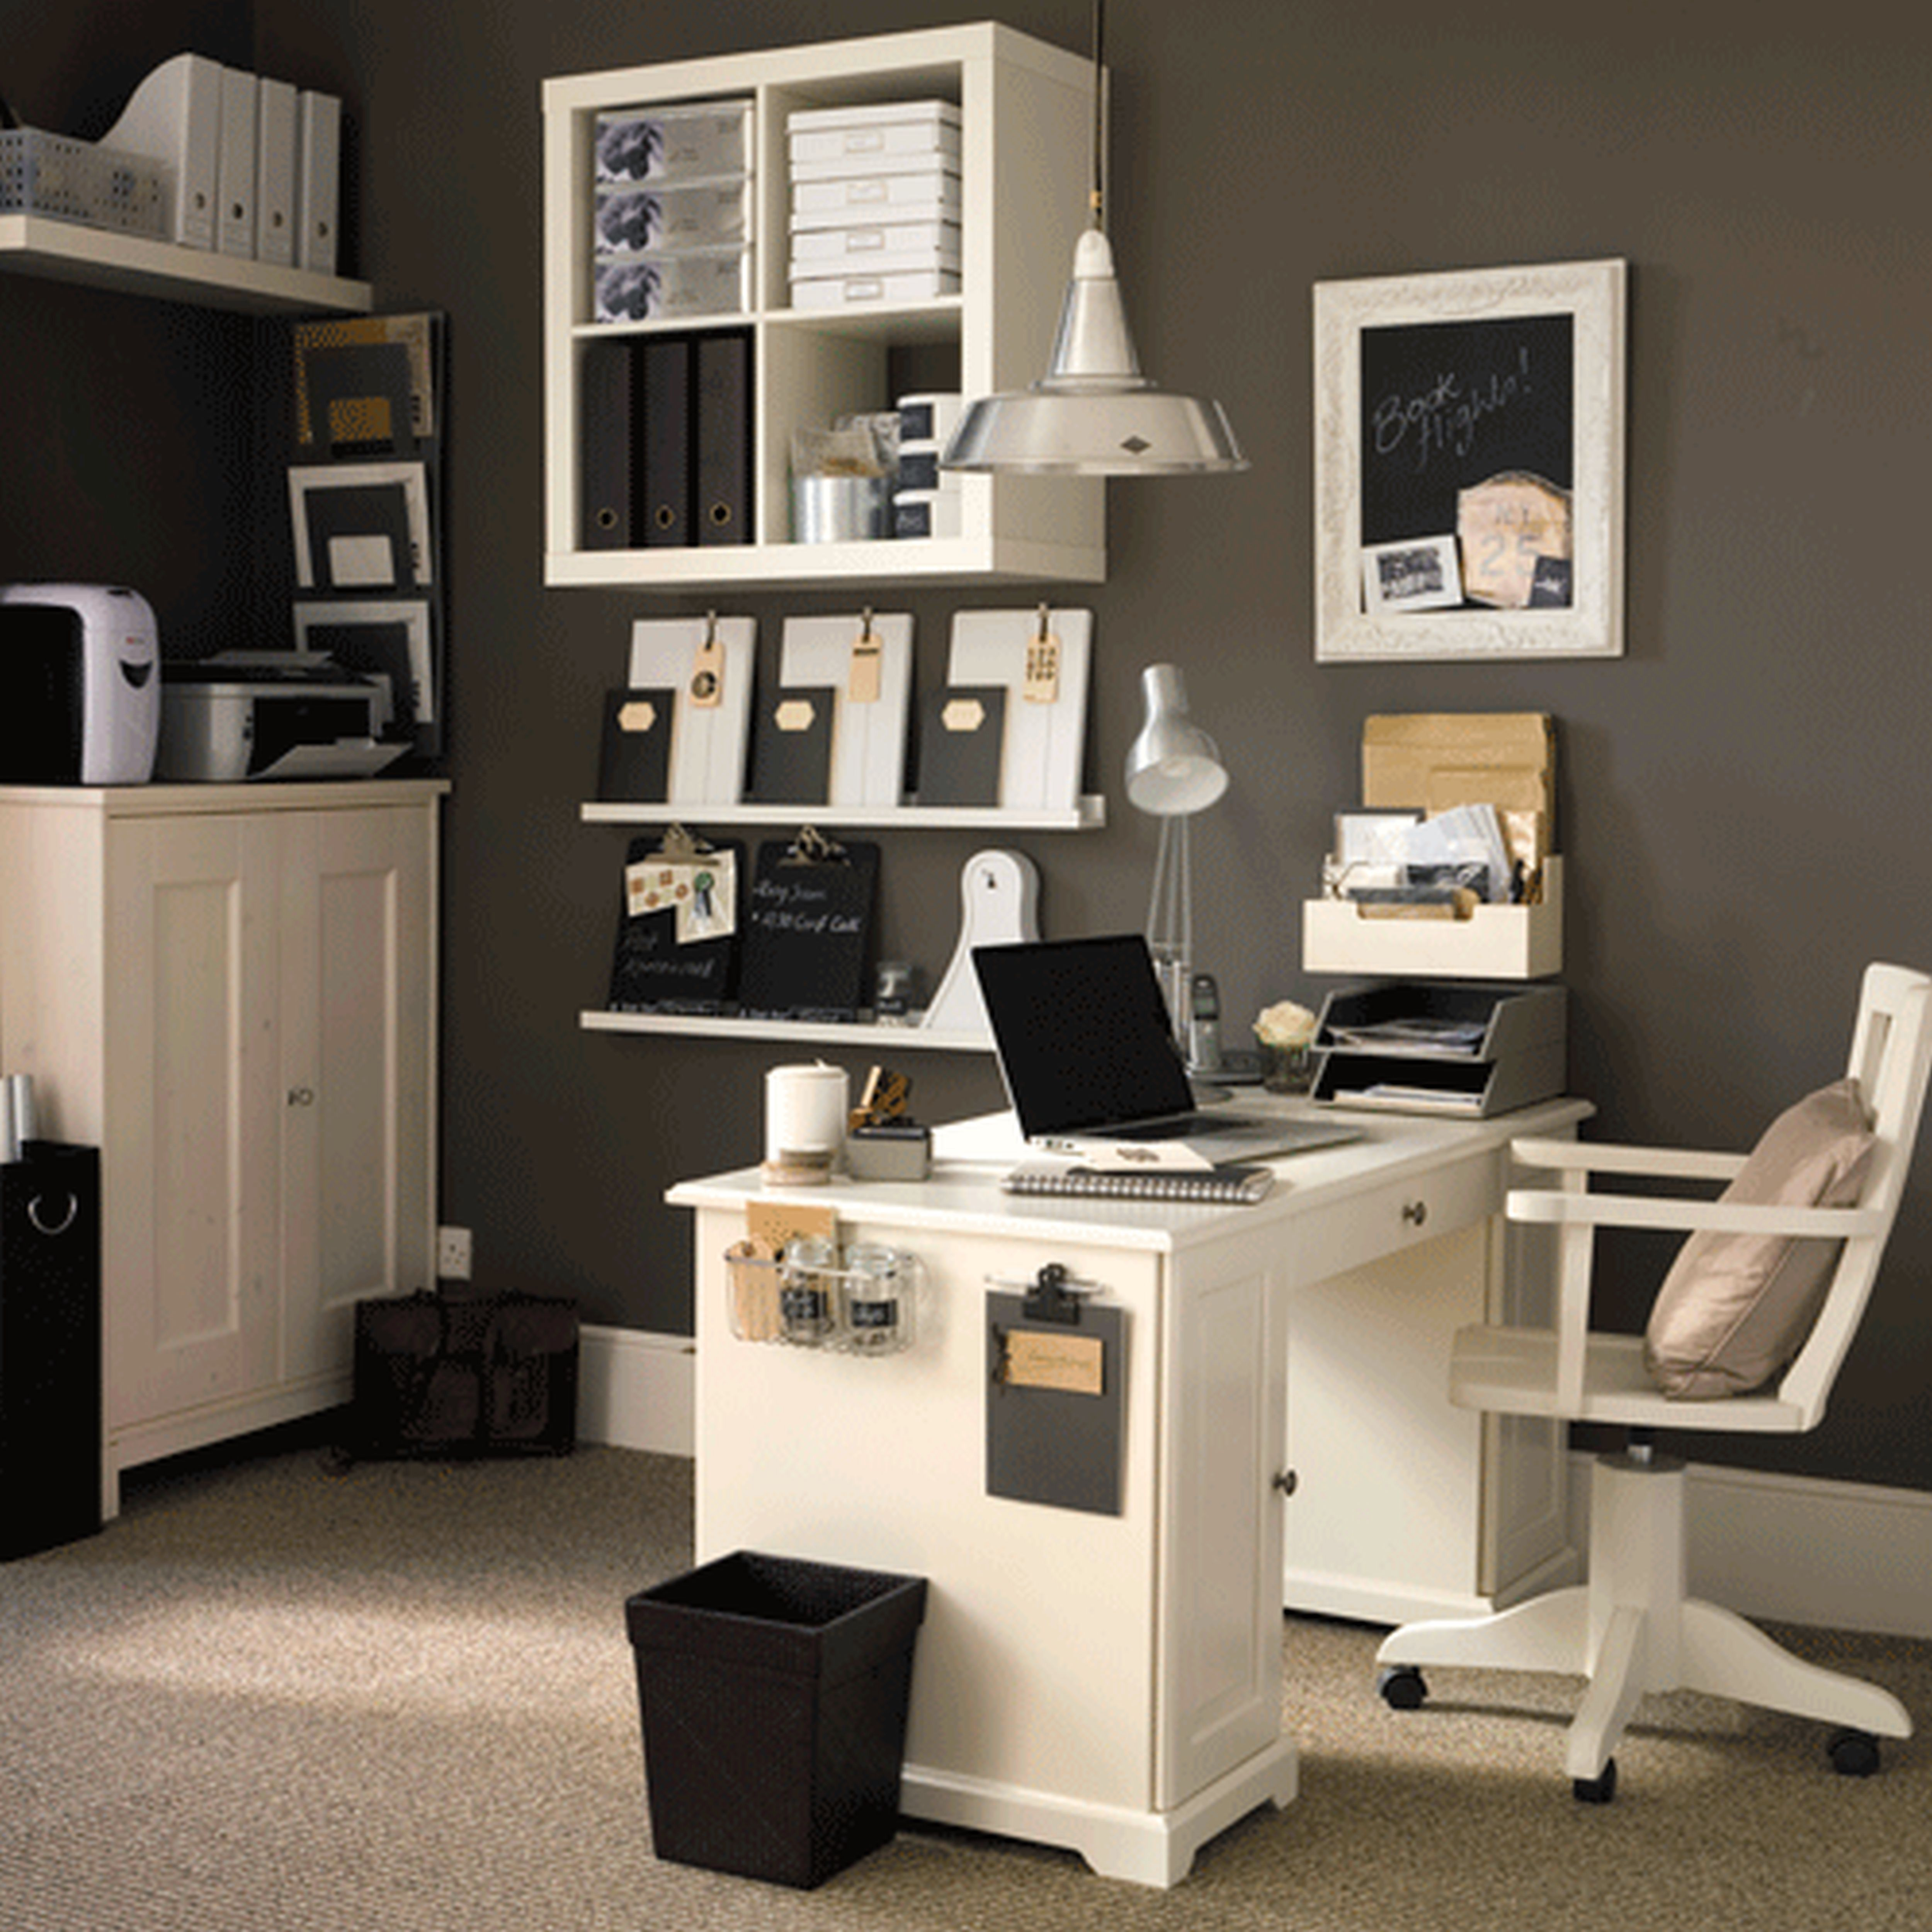 Ordinaire Home Office Design Ideas With Modern Style Furniture Ikea Contemporary Home  Office Designs Adorable Modern Home Office Character Engaging Ikea Design  Luxury ...